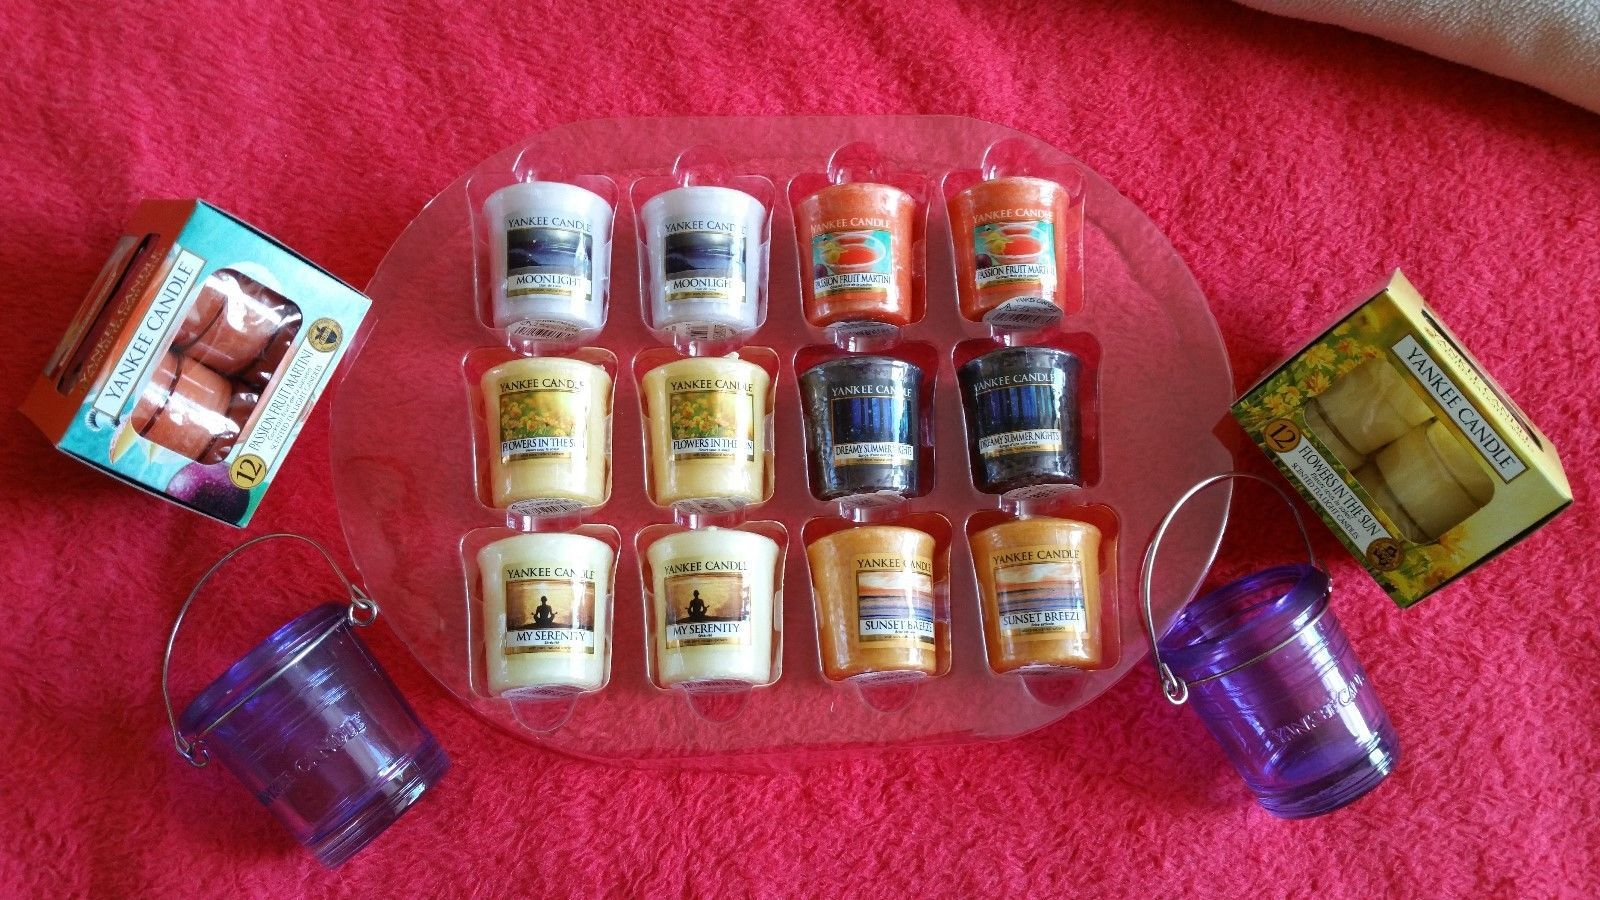 Yankee candle votives u tea lights passion fruit flowers in the